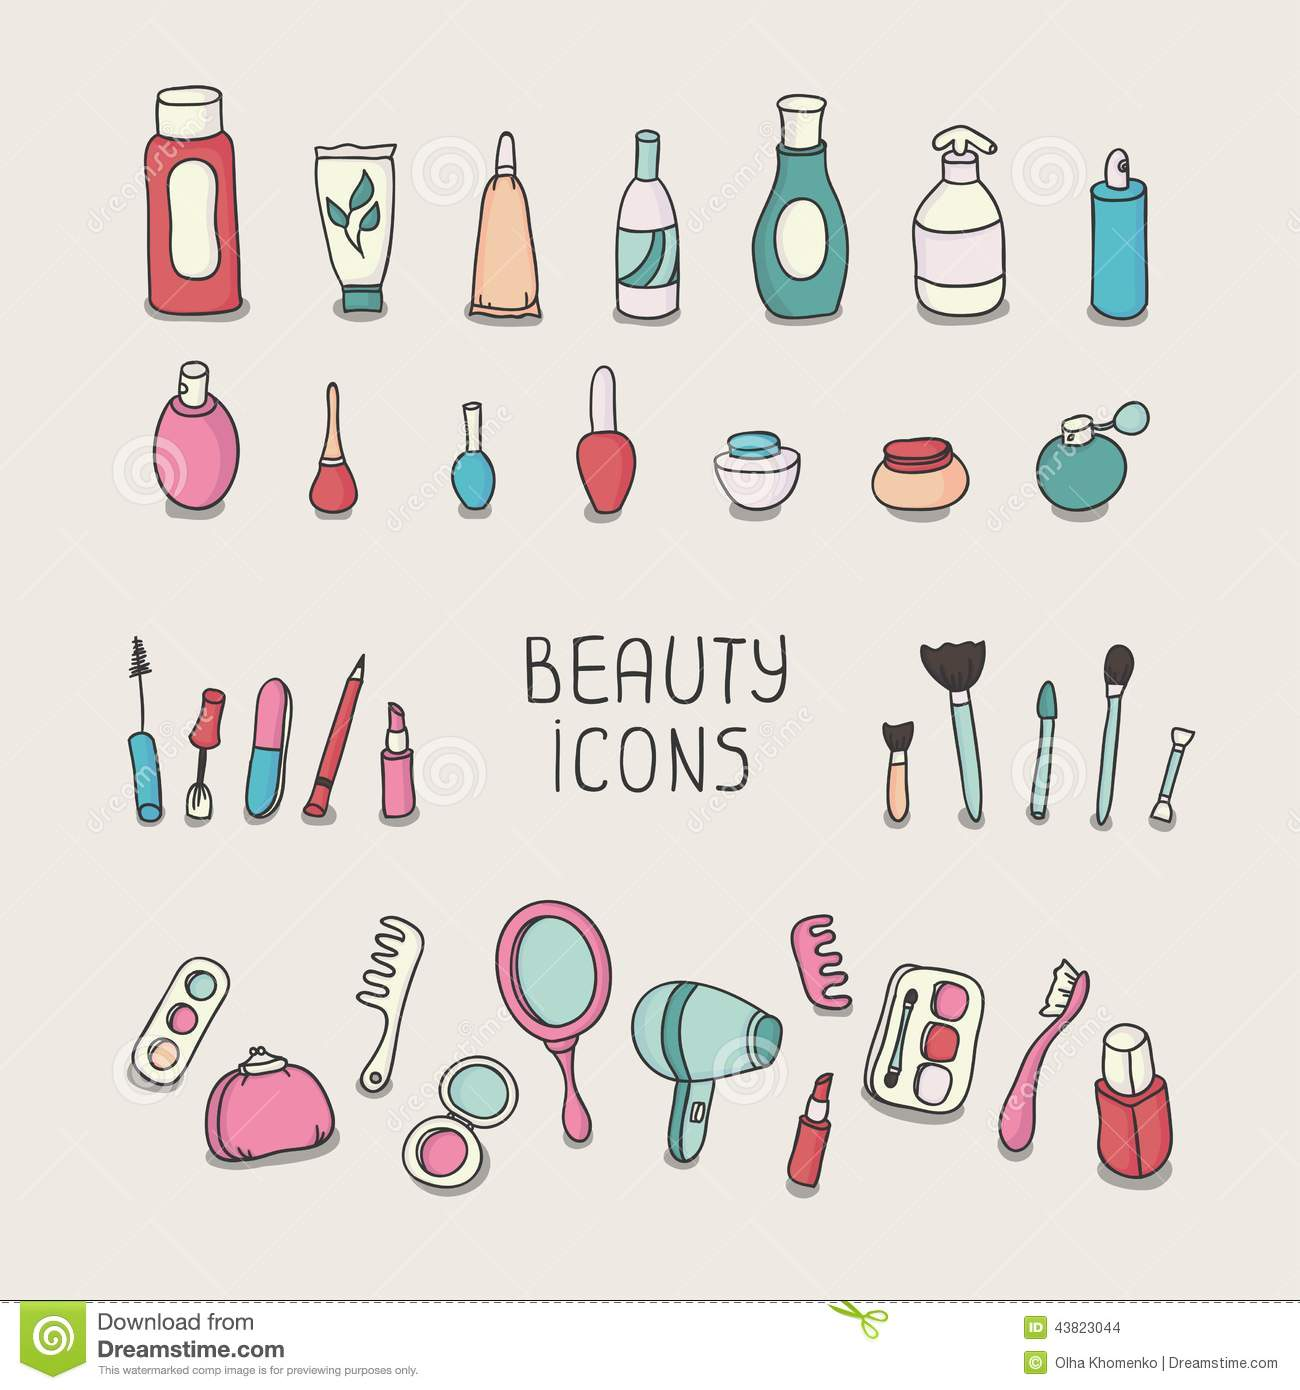 Girly Bathroom Ideas Set Of Vintage Cosmetics Elements And Beauty Stock Vector